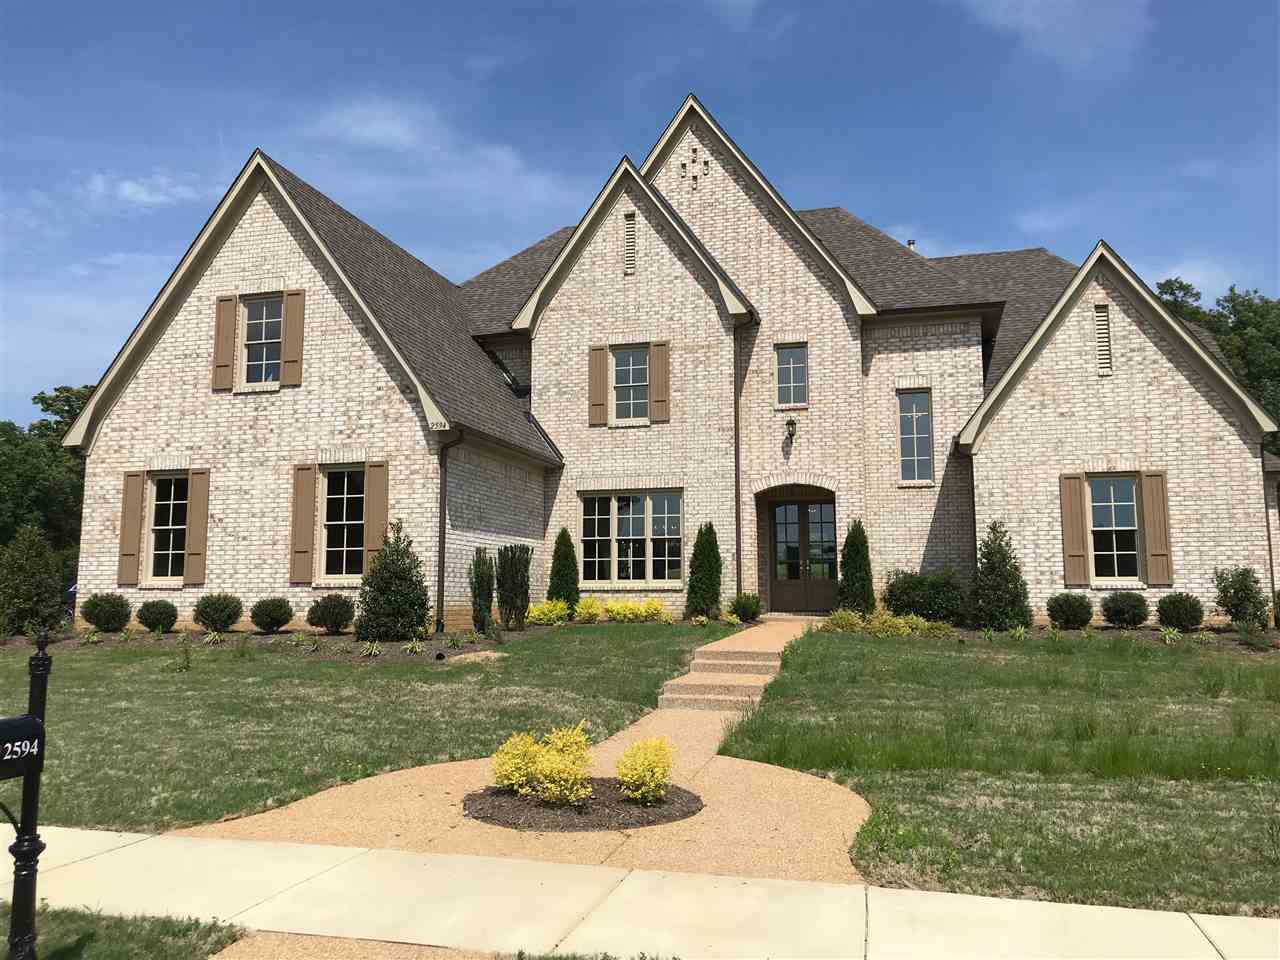 2594 Canale Tagg, Germantown, TN 38138